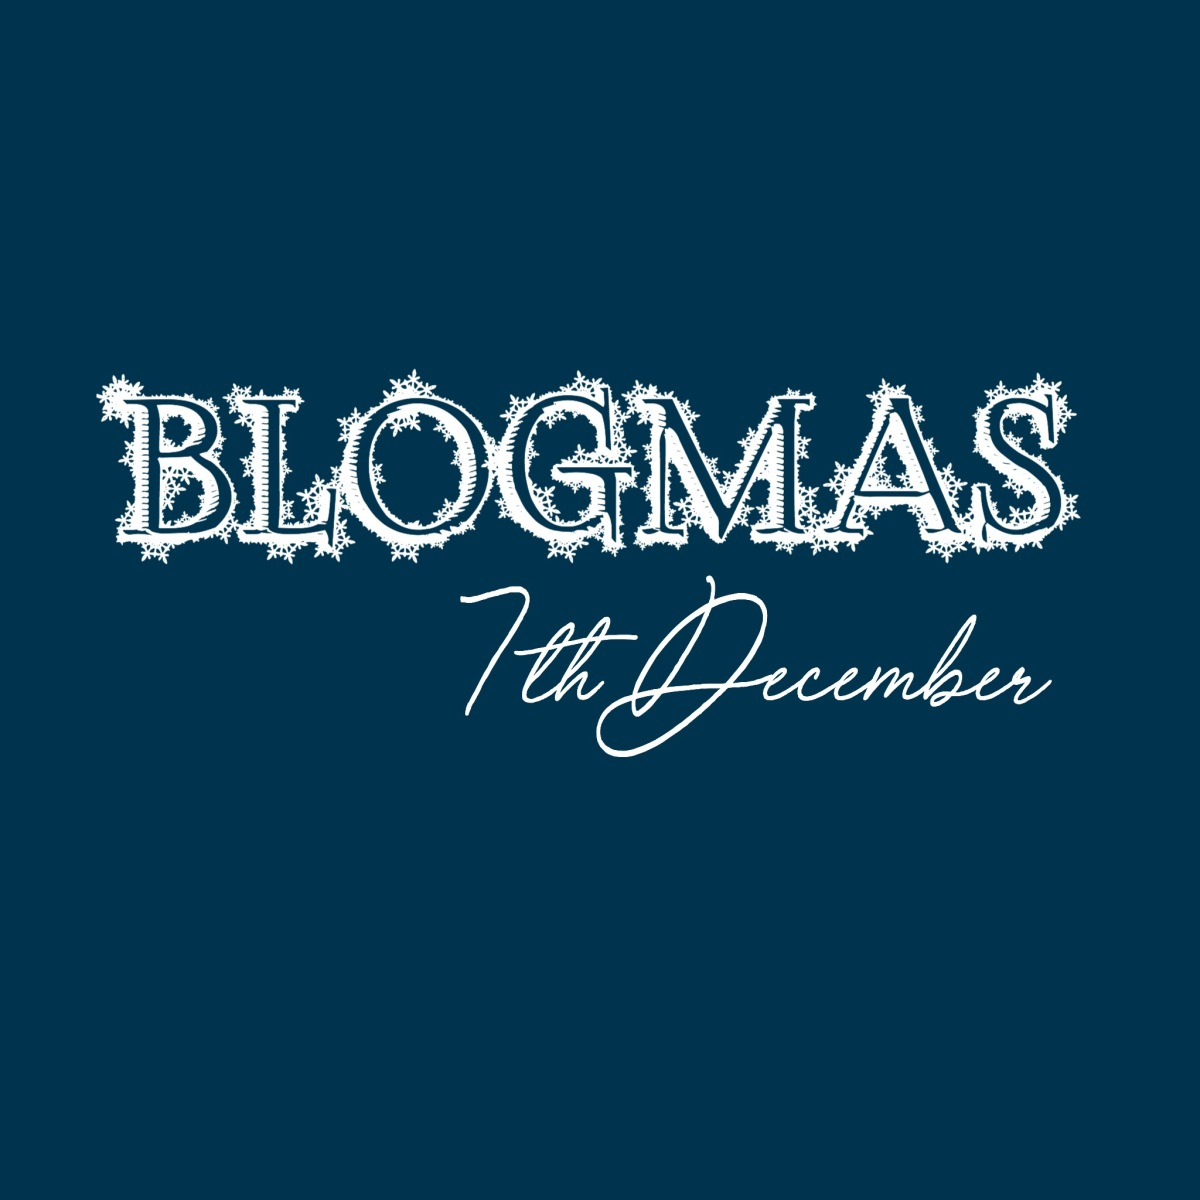 Blogmas - Introducing Mrs Claus